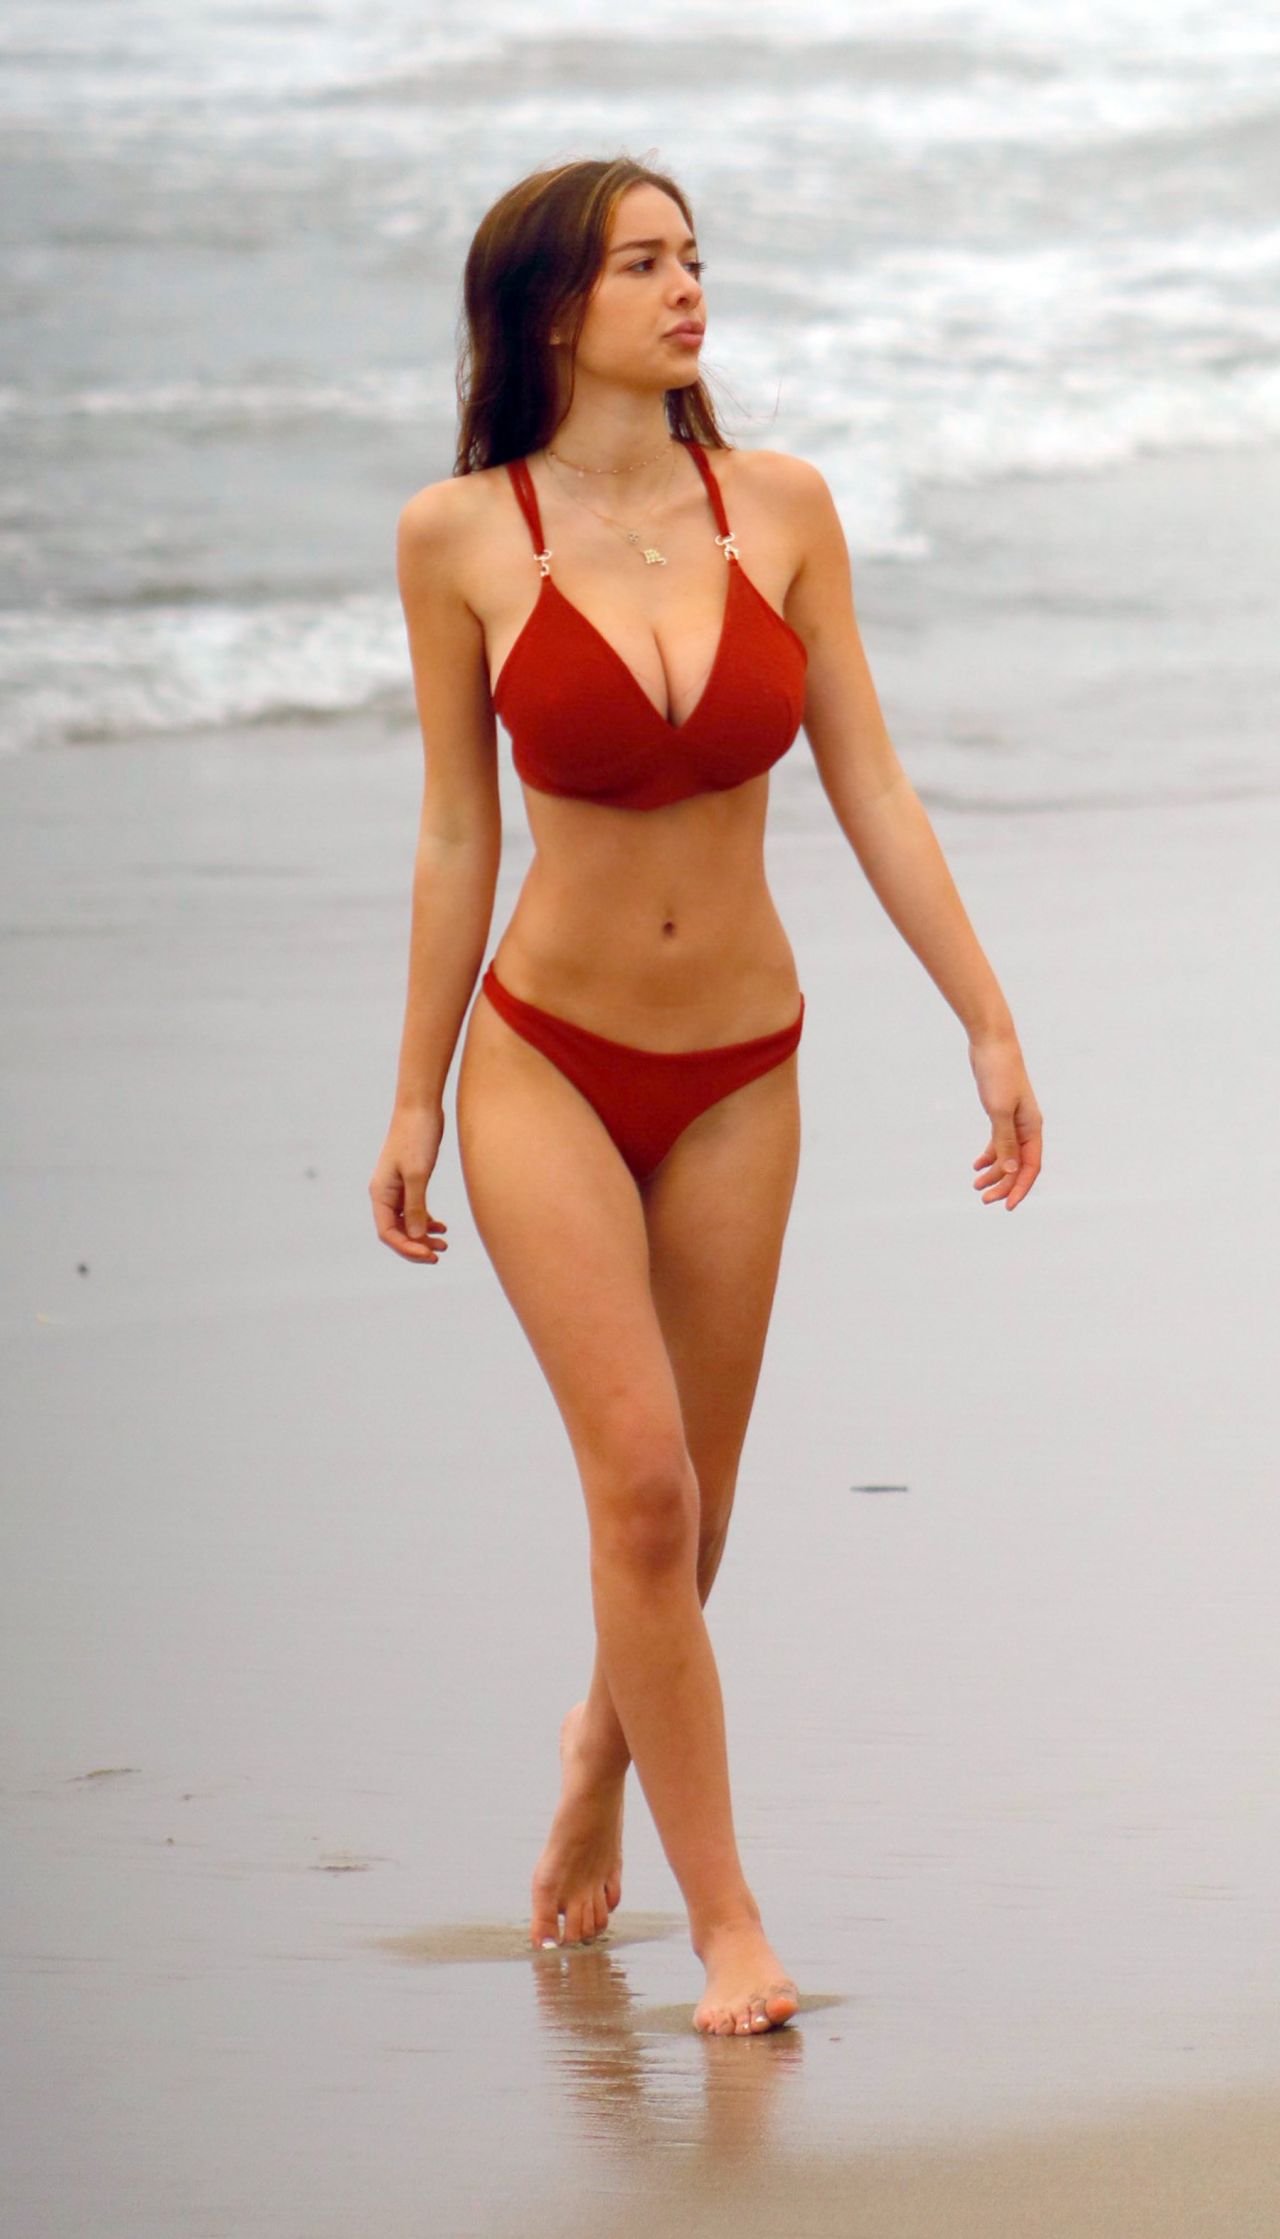 Sophie Mudd In A Red Bikini On The Beach In Malibu-7540